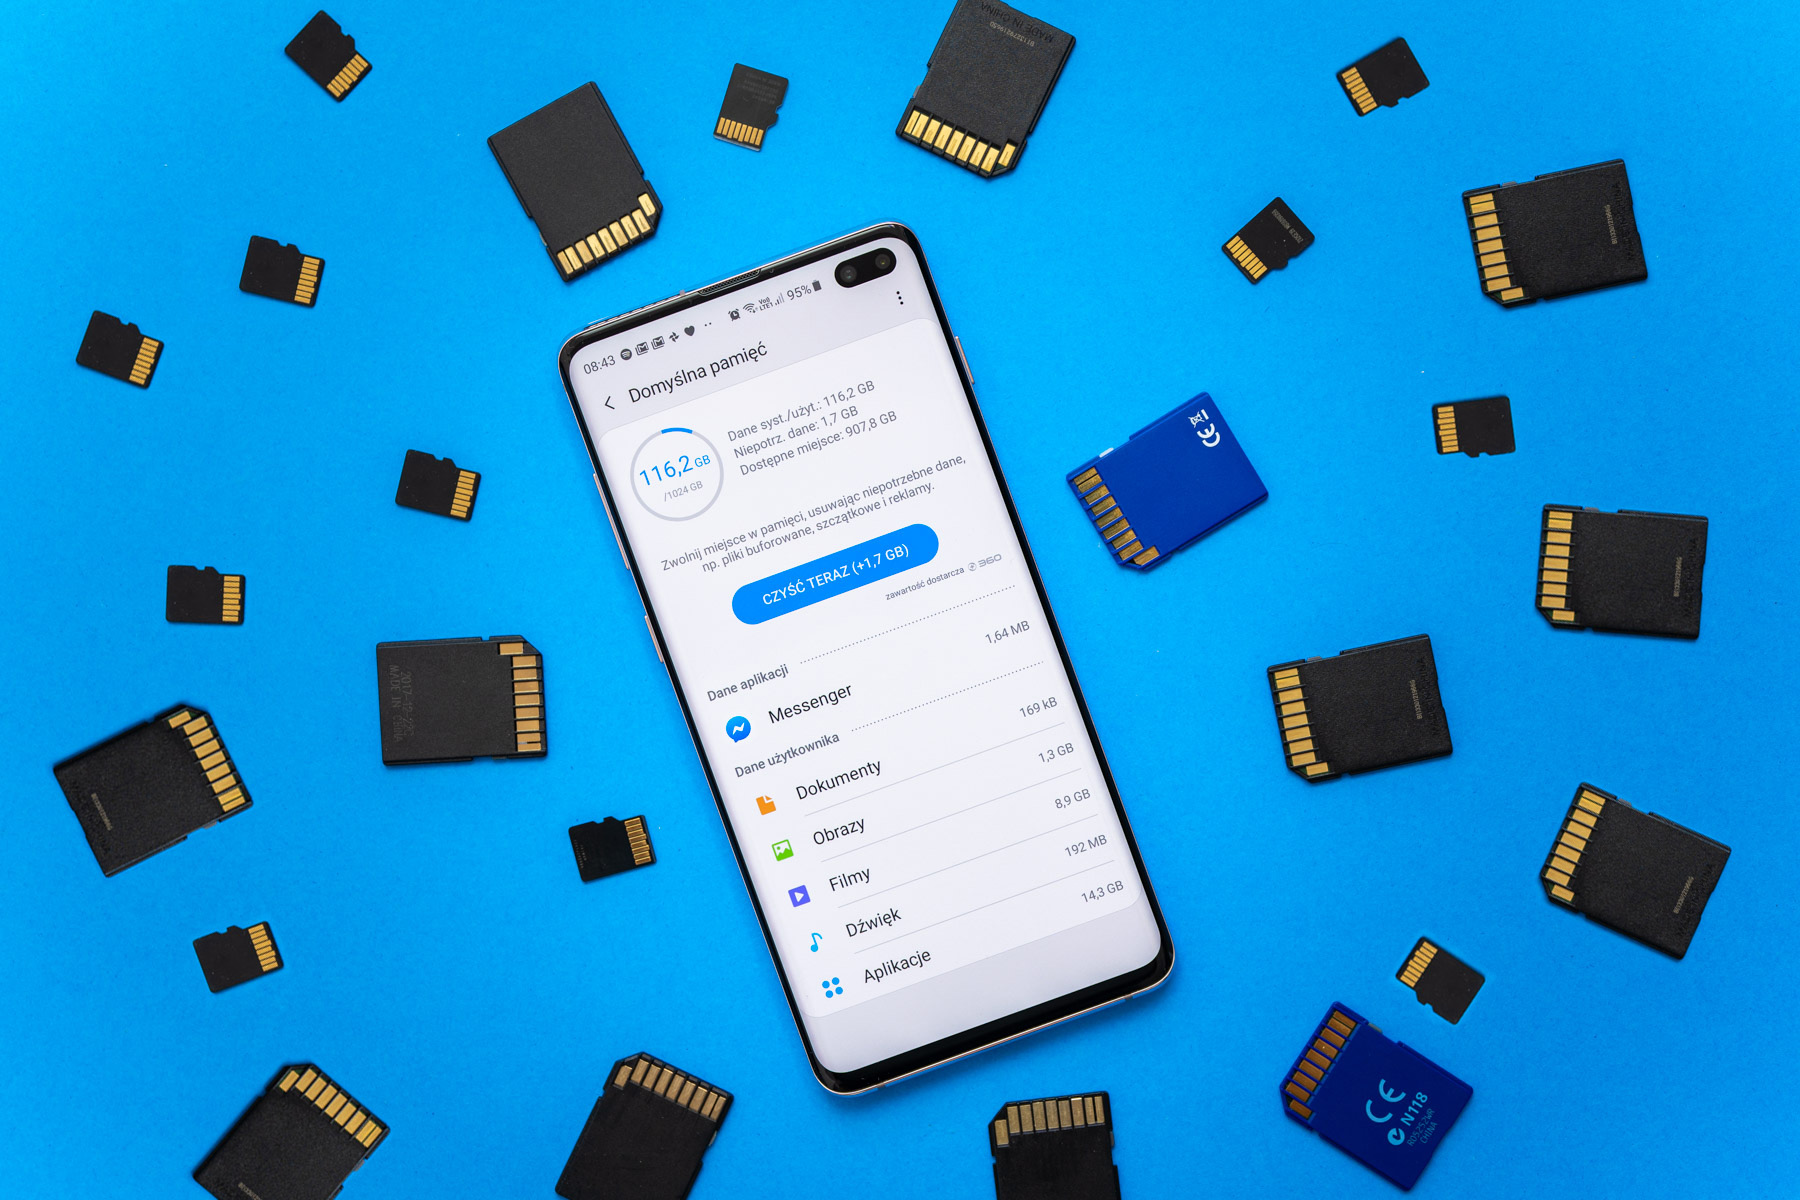 samsung galaxy s10+ performance edition 1tb 1tbchallenge